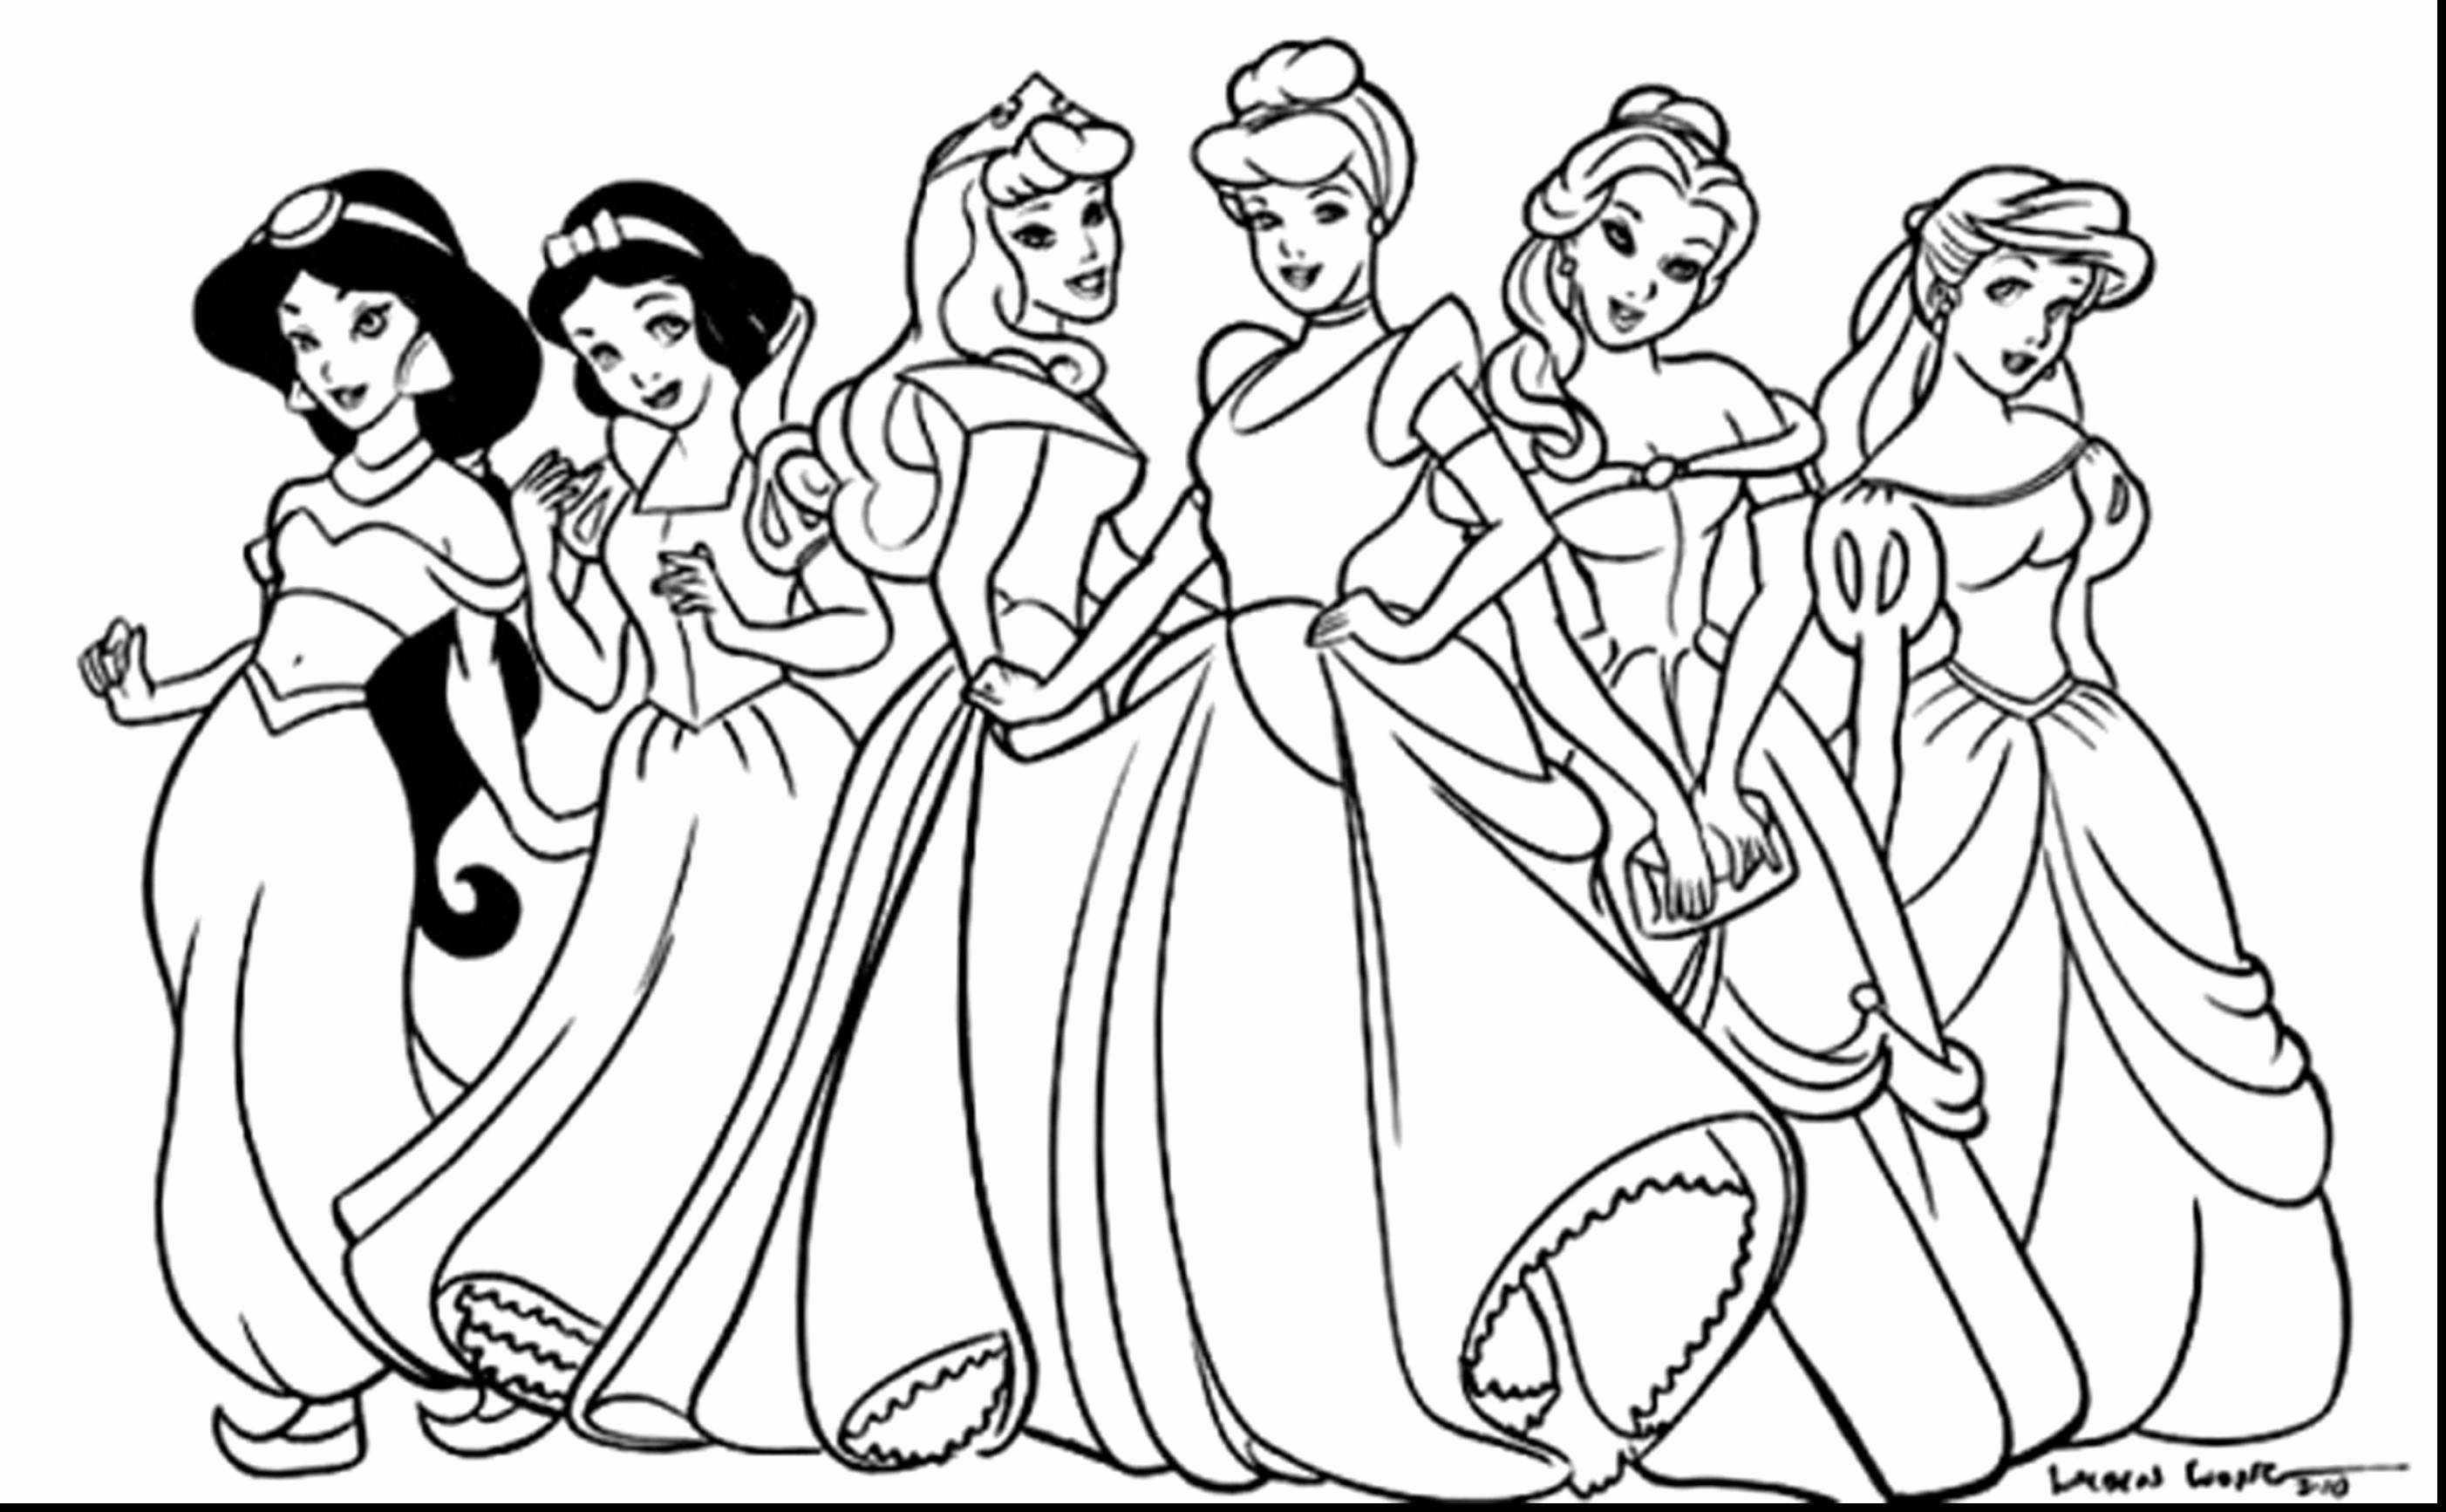 princess-colouring-pages-pdf-of-princess-colouring-pages-pdf Princess Colouring Pages Pdf Cartoon